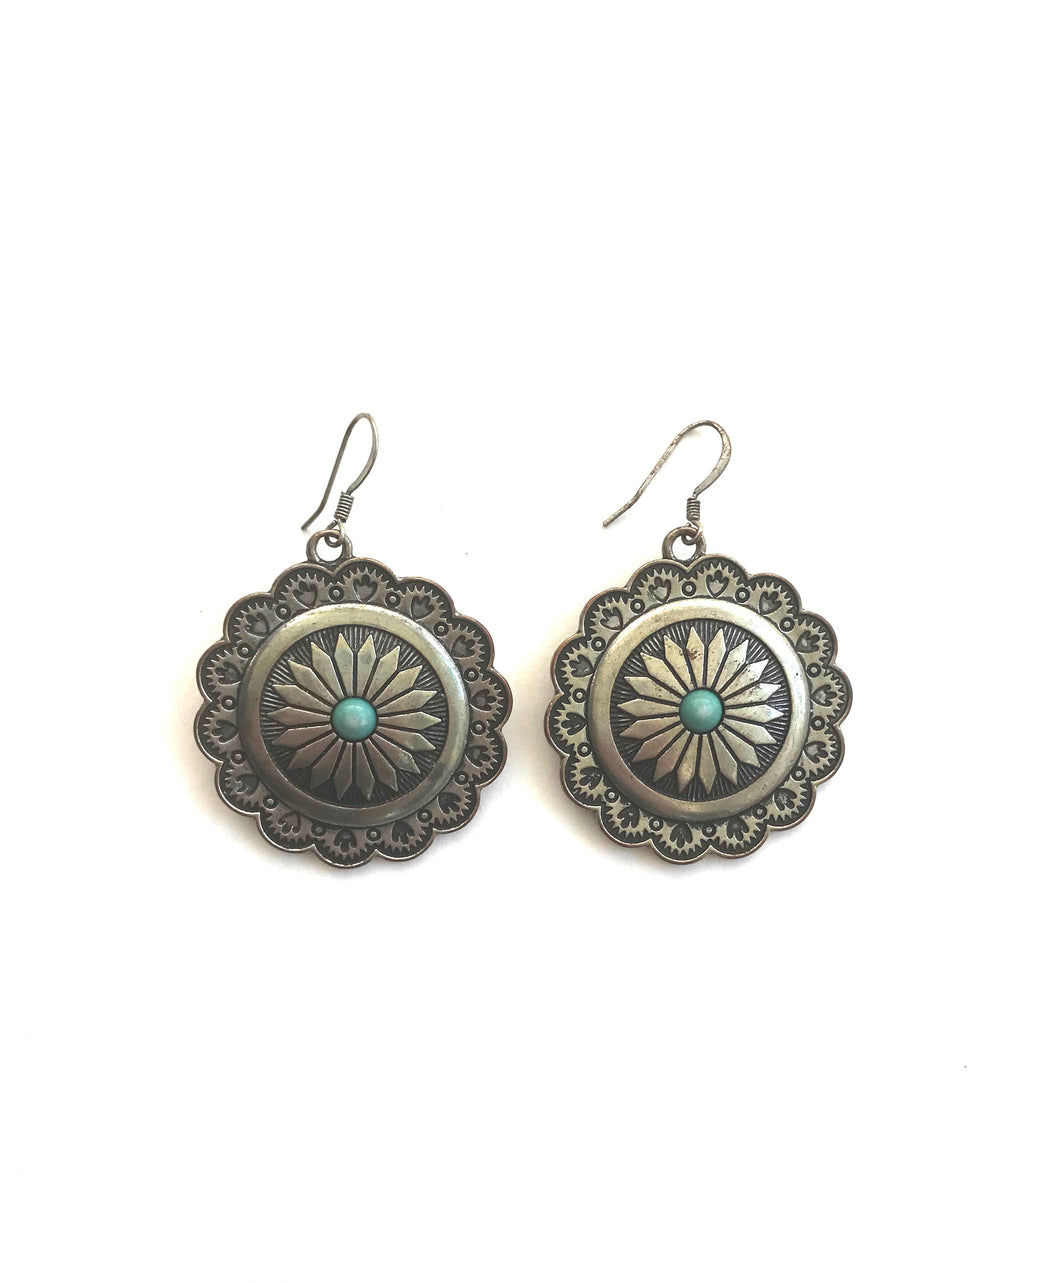 silvertone metal earrings